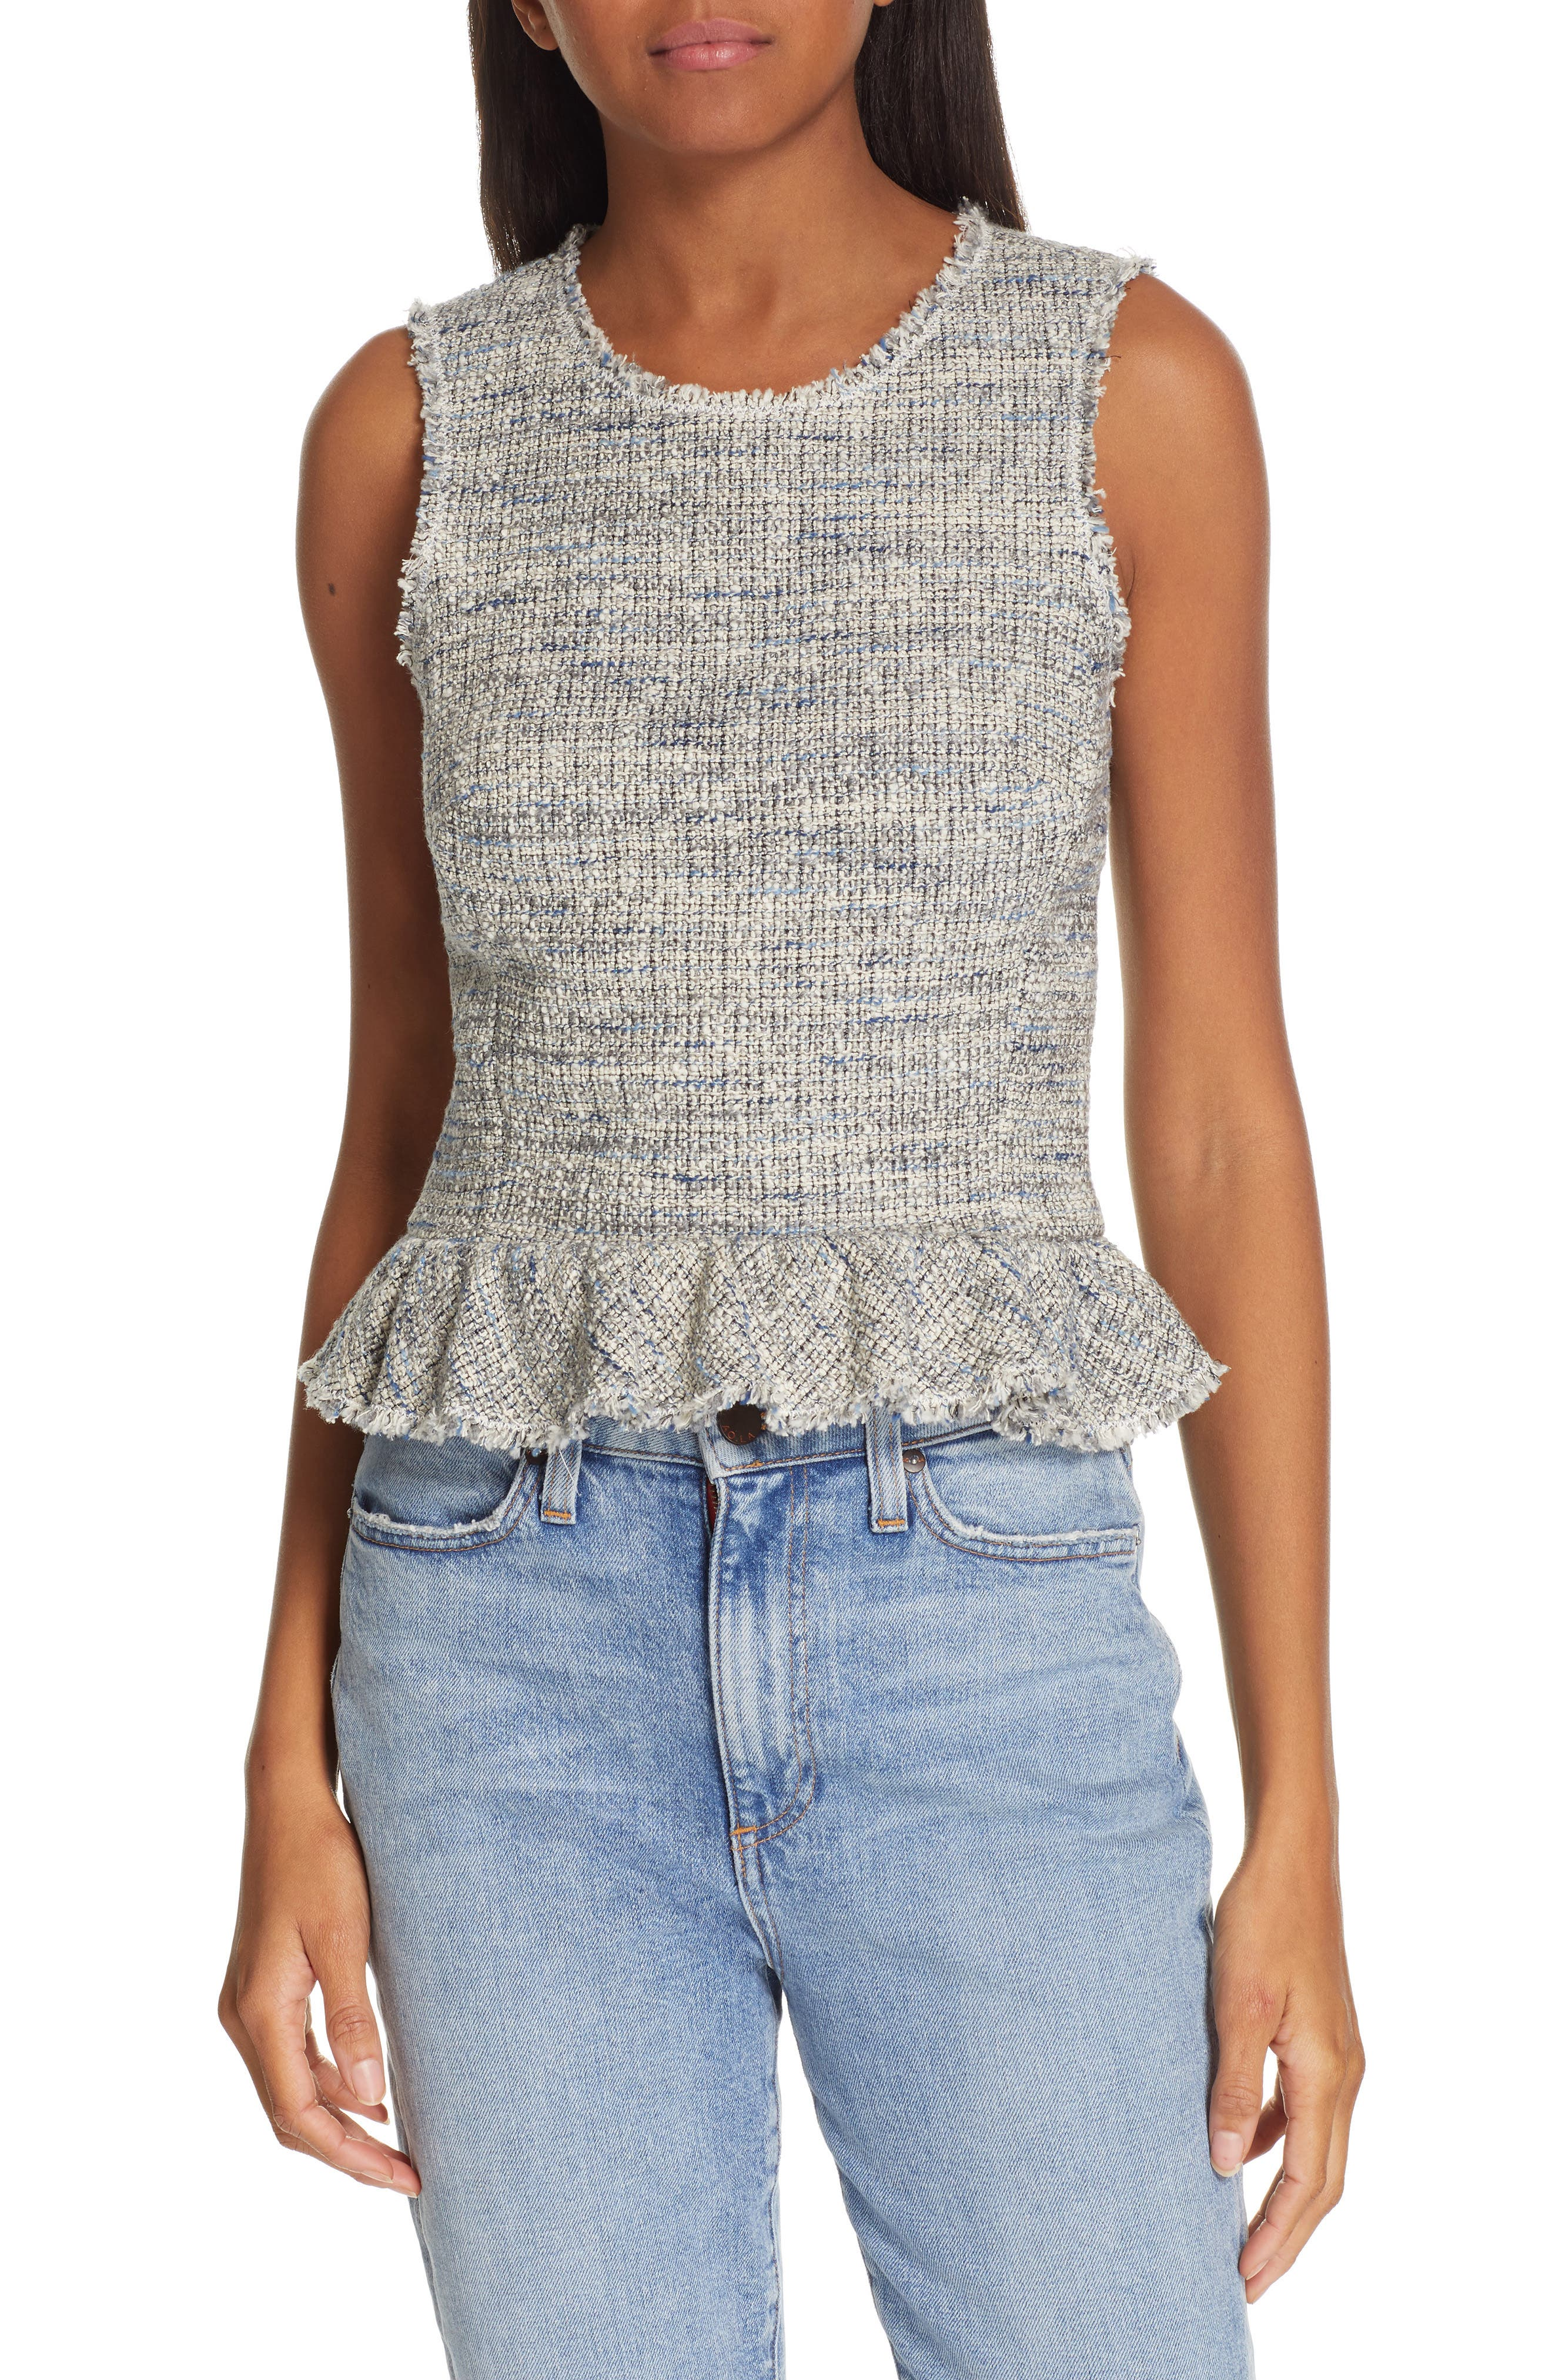 REBECCA TAYLOR Sleeveless Tweed Peplum Top, Main, color, BLUE/ GREY COMBO